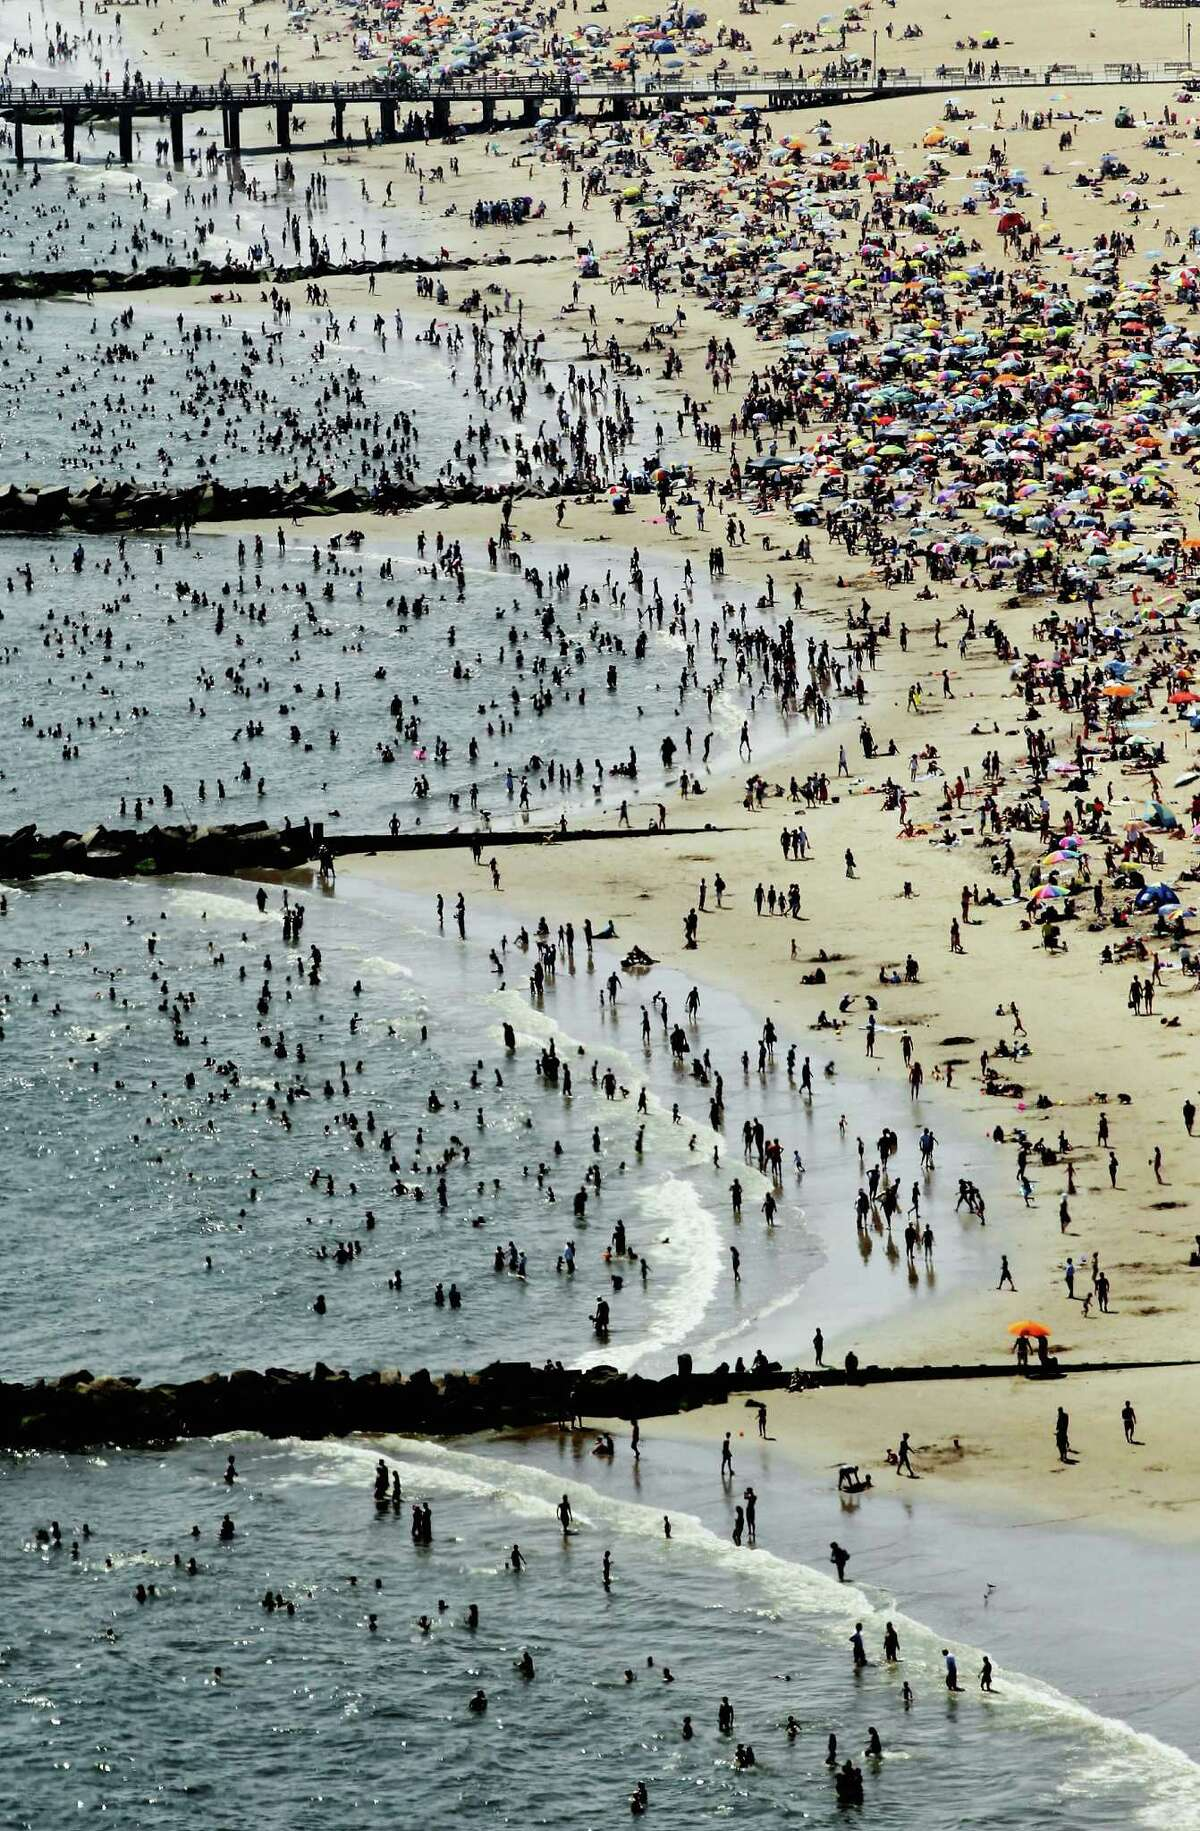 NEW YORK, NY - AUGUST 04: An aerial view of New Yorkers taking in the sun on a beach at Coney Island on August 4, 2012 in the Brooklyn borough of New York City. The past year through June 2012 in the continental United States has been the hottest since modern record-keeping started in 1895, according to the National Oceanic and Atmospheric Administration (NOAA). NOAA also reports the ten warmest years since 1895 have occurred since 2000. A weather expert at the agency suggested climate change has a role in the high temperatures.